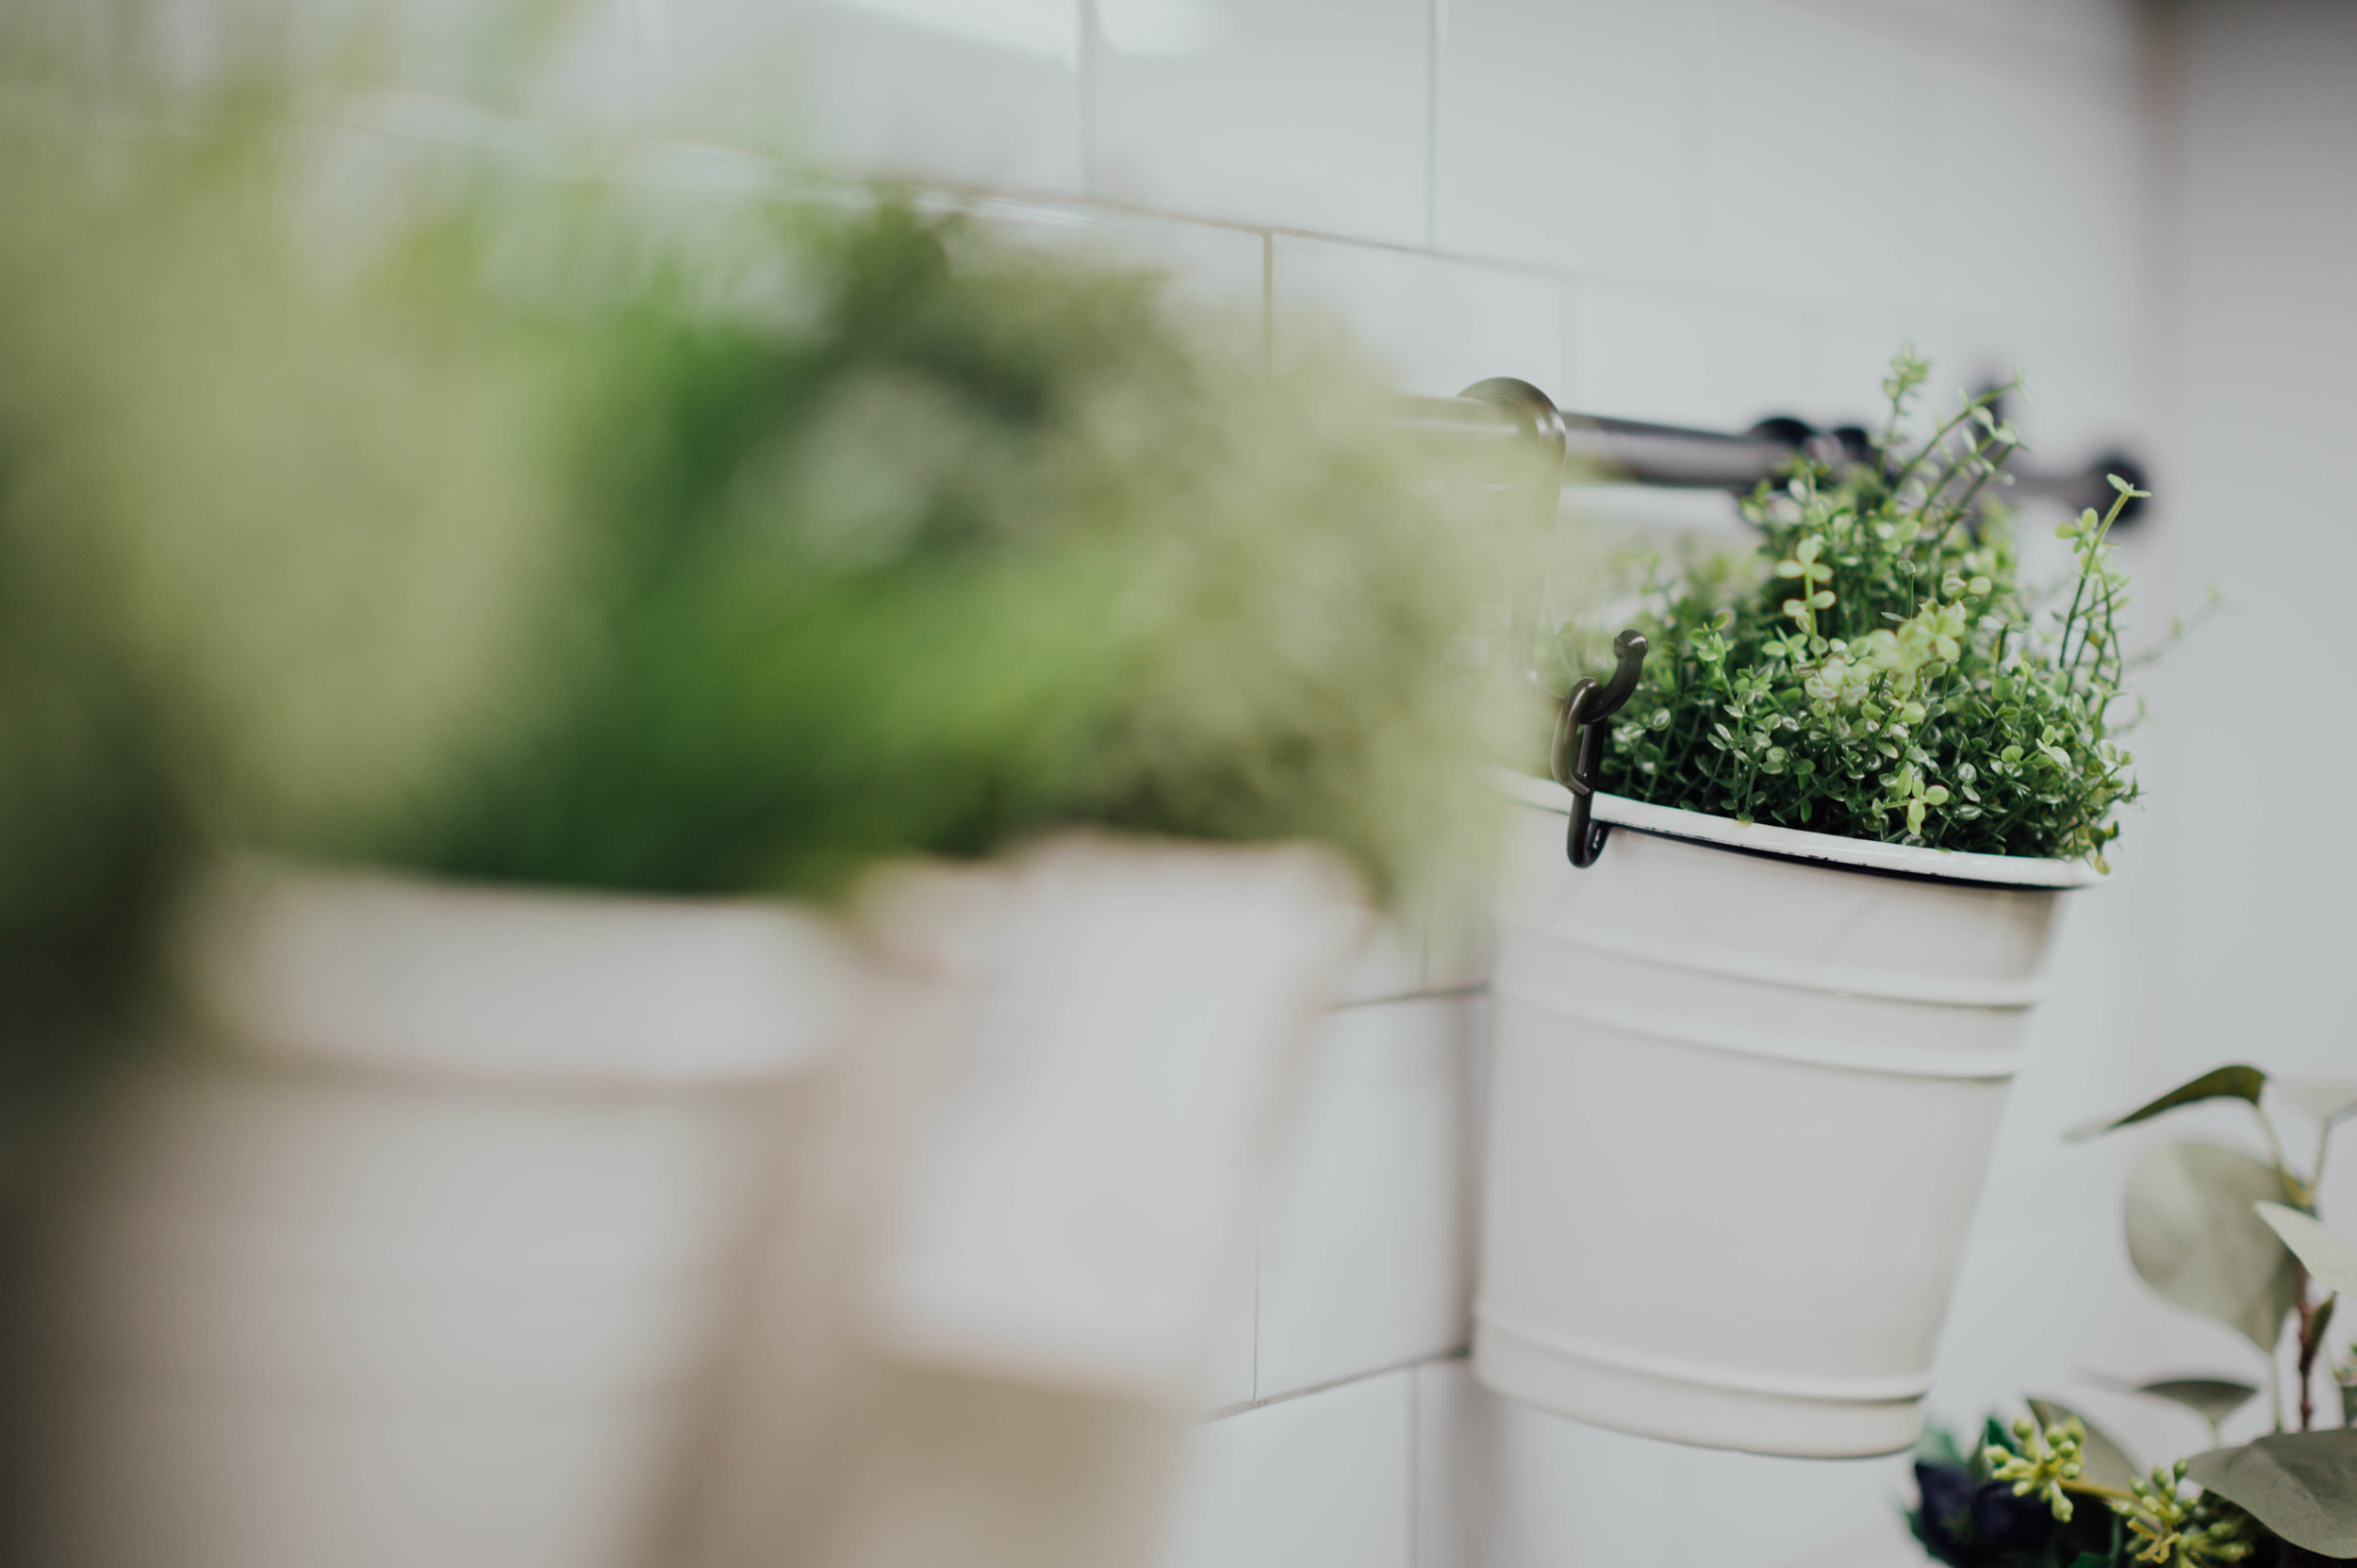 Growing your own herbs makes you eco-friendly, lowers your carbon footprint, saves you money and makes you look like a proper domestic goddess!